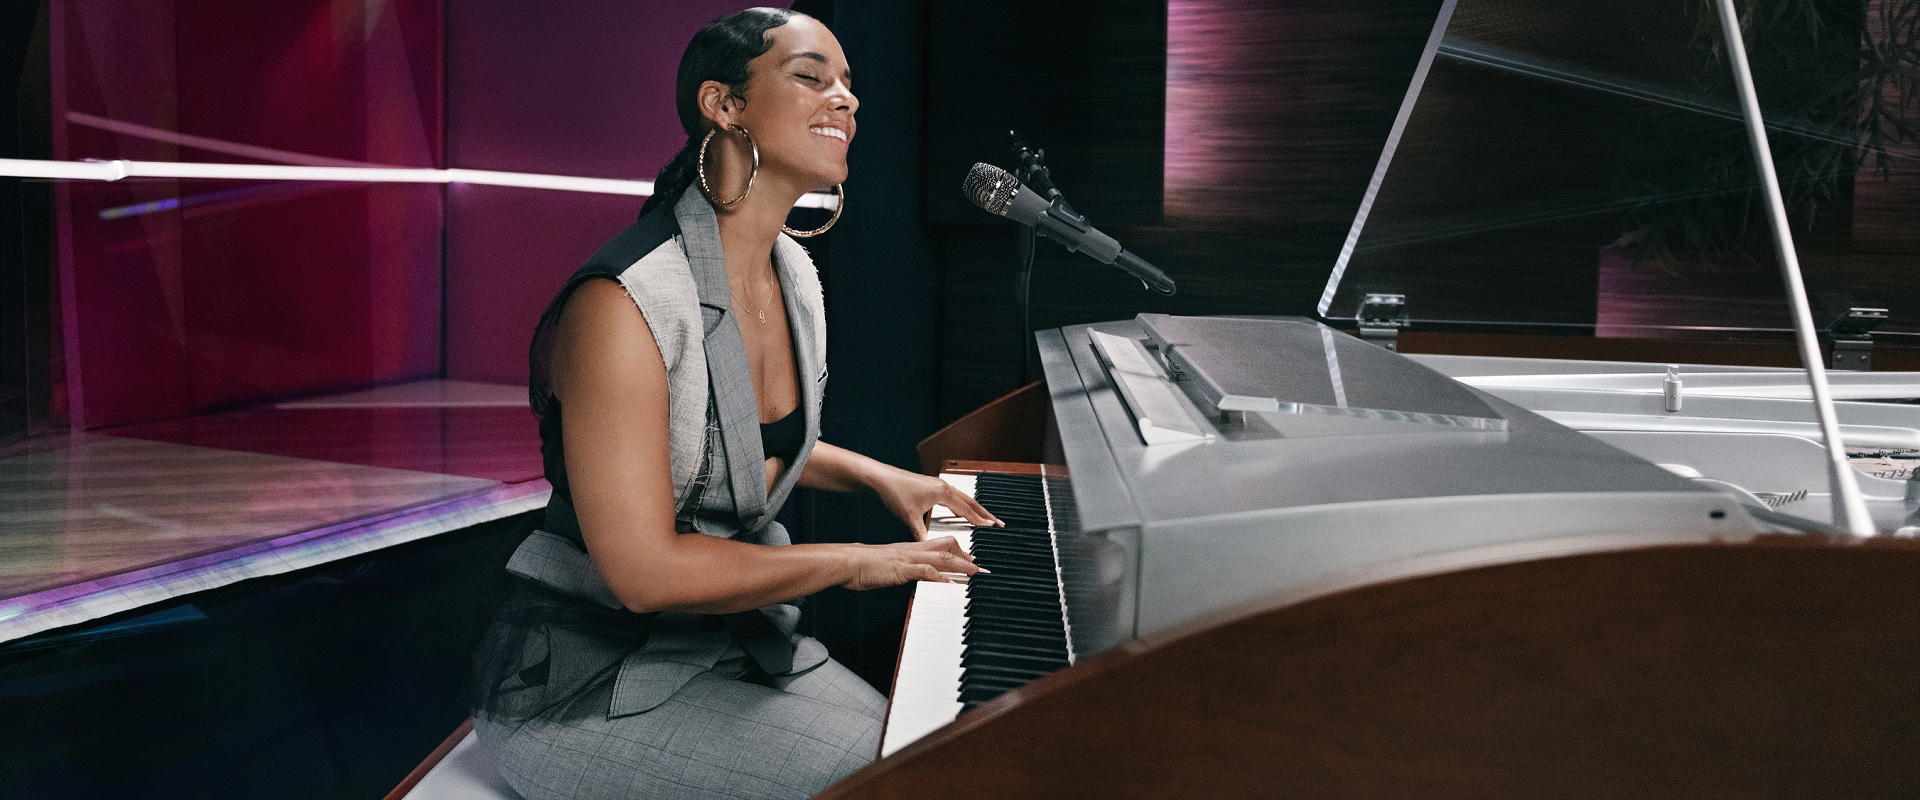 ALICIA KEYS OFFERS ONLINE SONGWRITING CLASSES